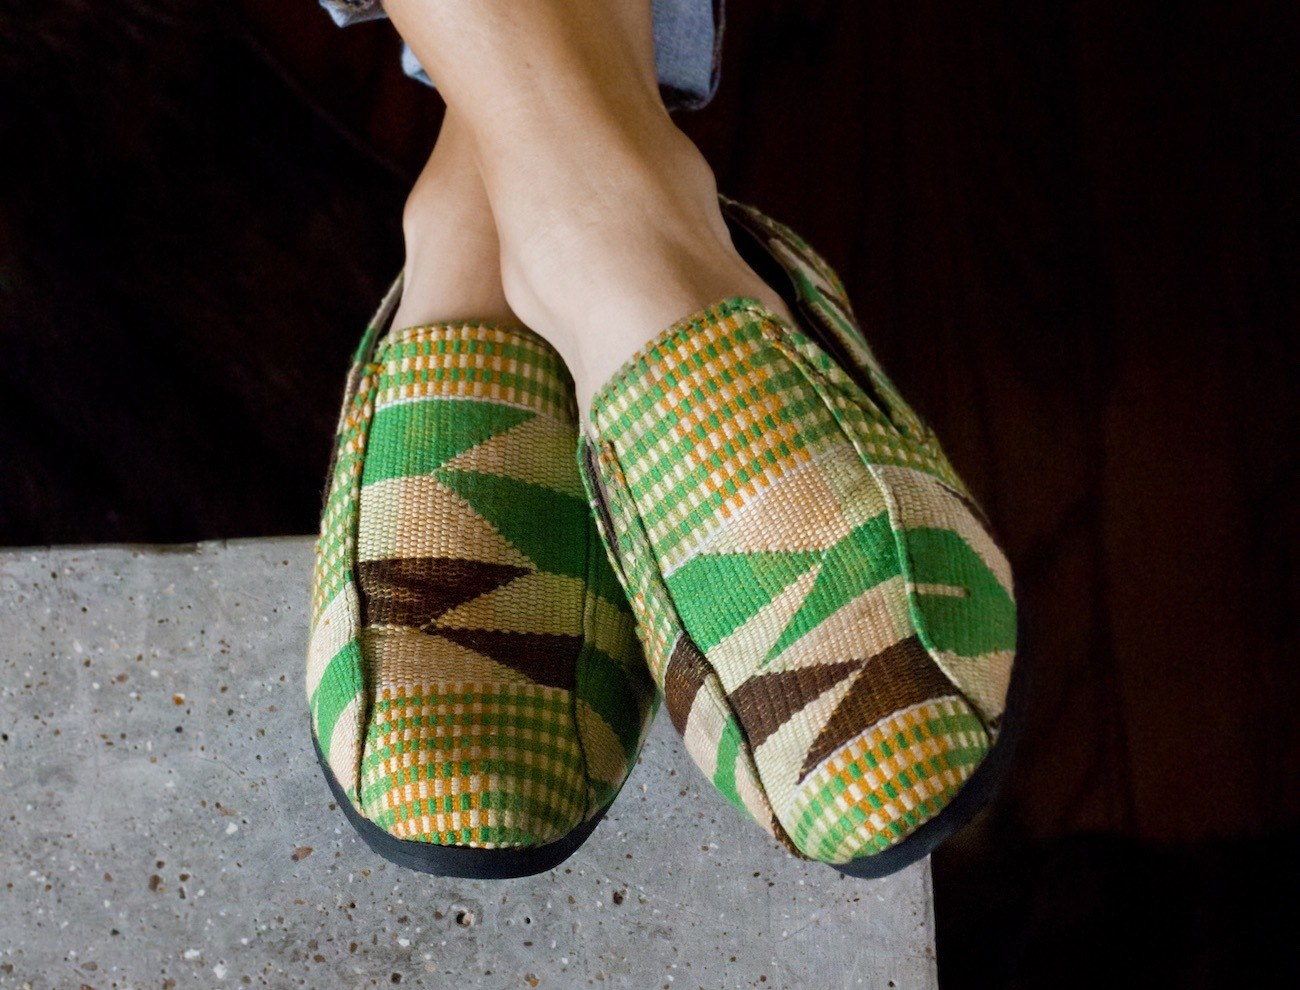 Kwame Baah – Exquisite Handcrafted Footwear from Ghana